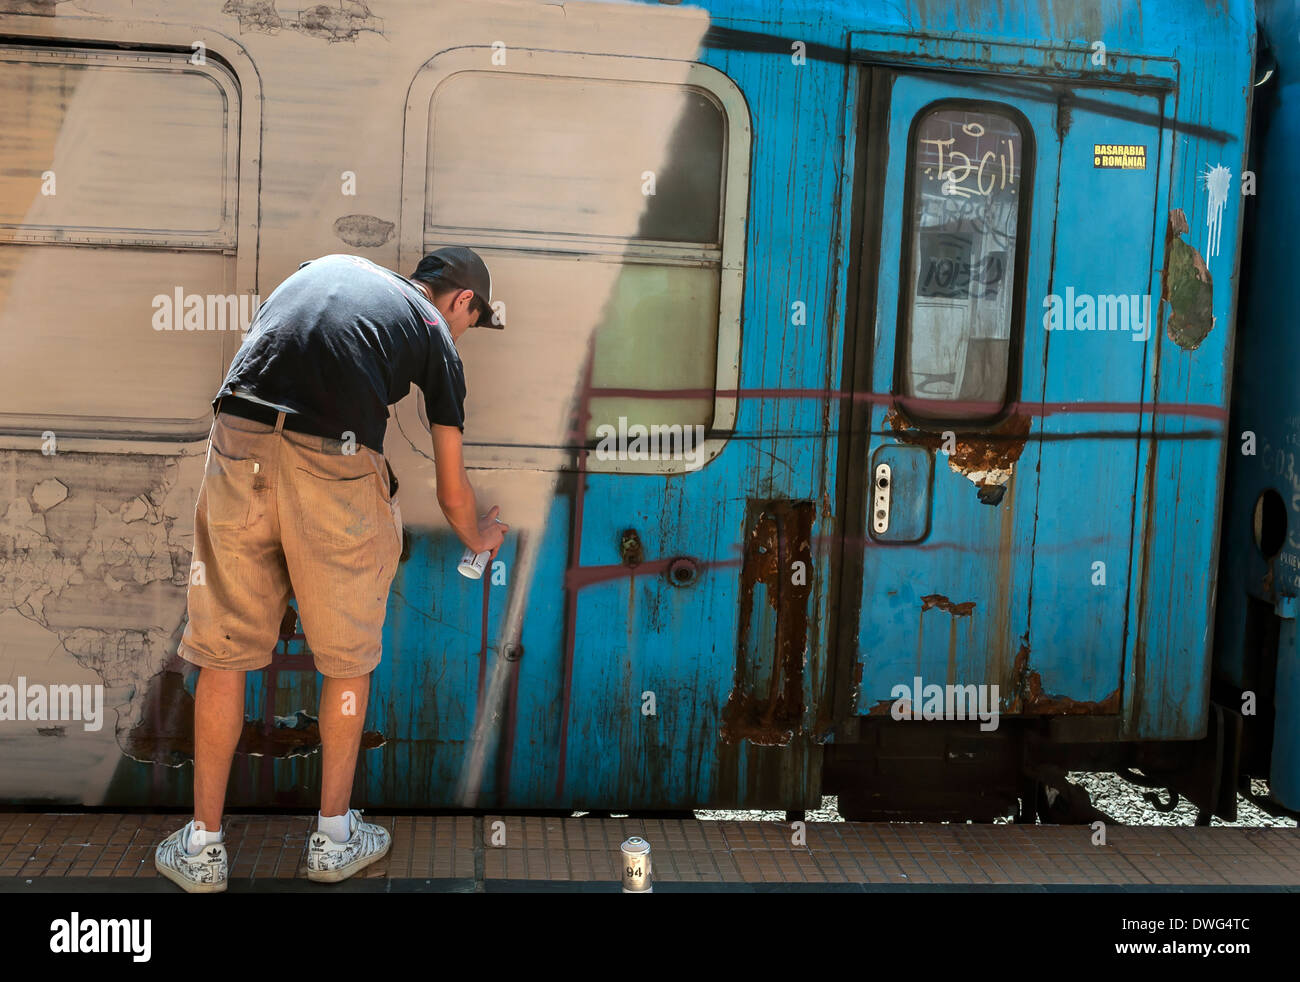 Graffiti Creator Stockfoto Bild 67352556 Alamy